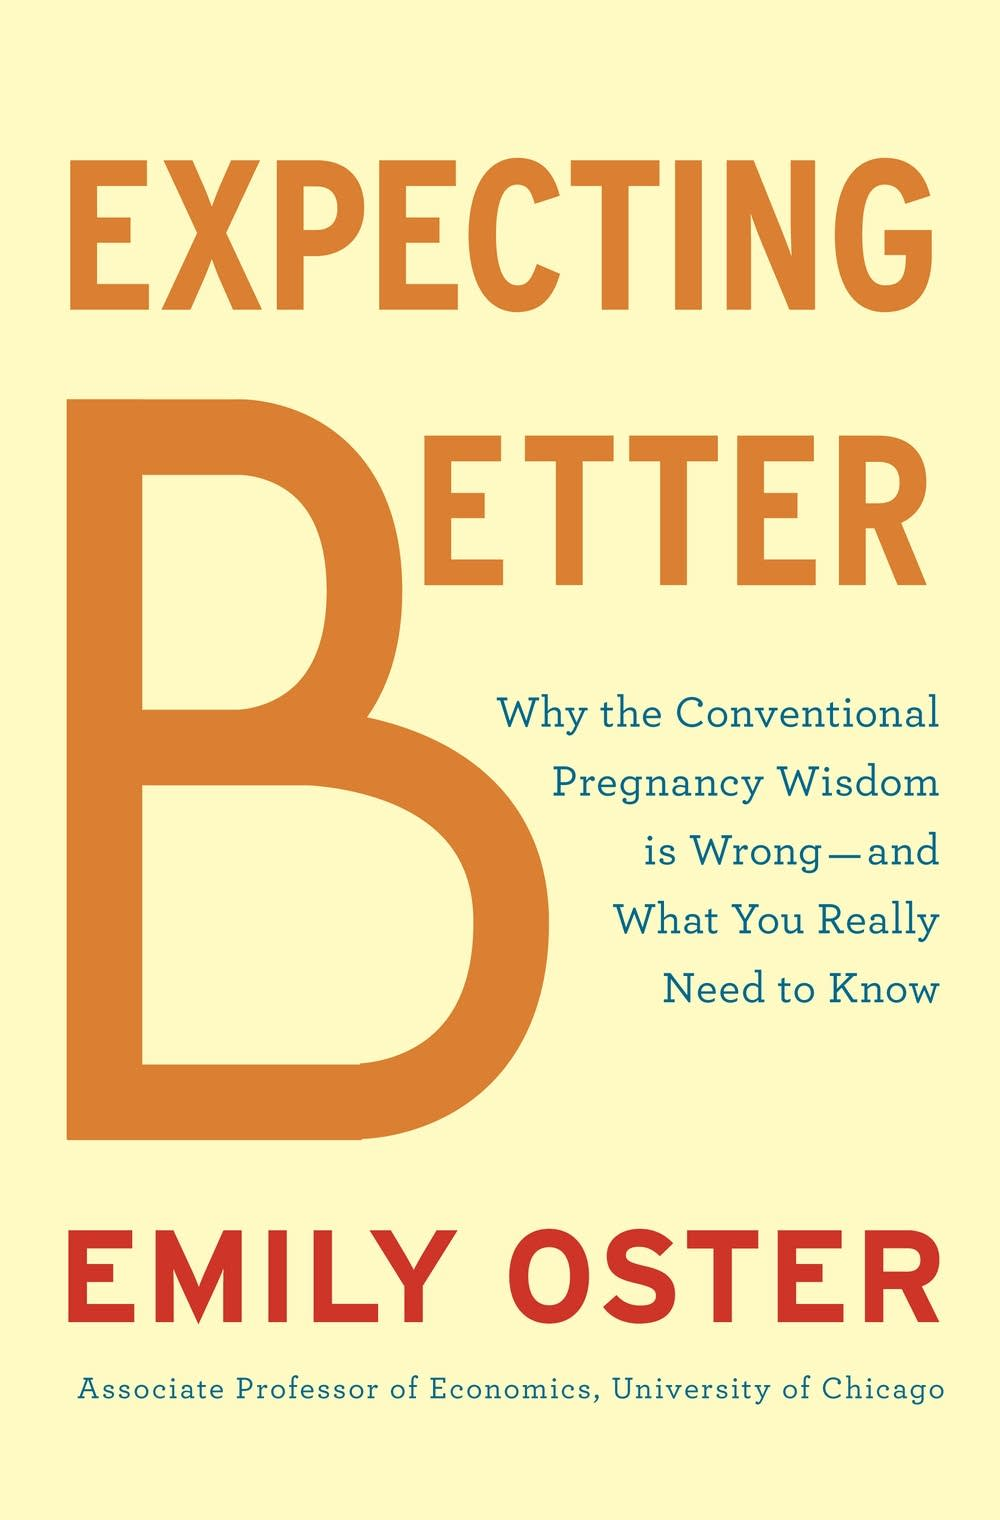 'Expecting Better' by Emily Oster